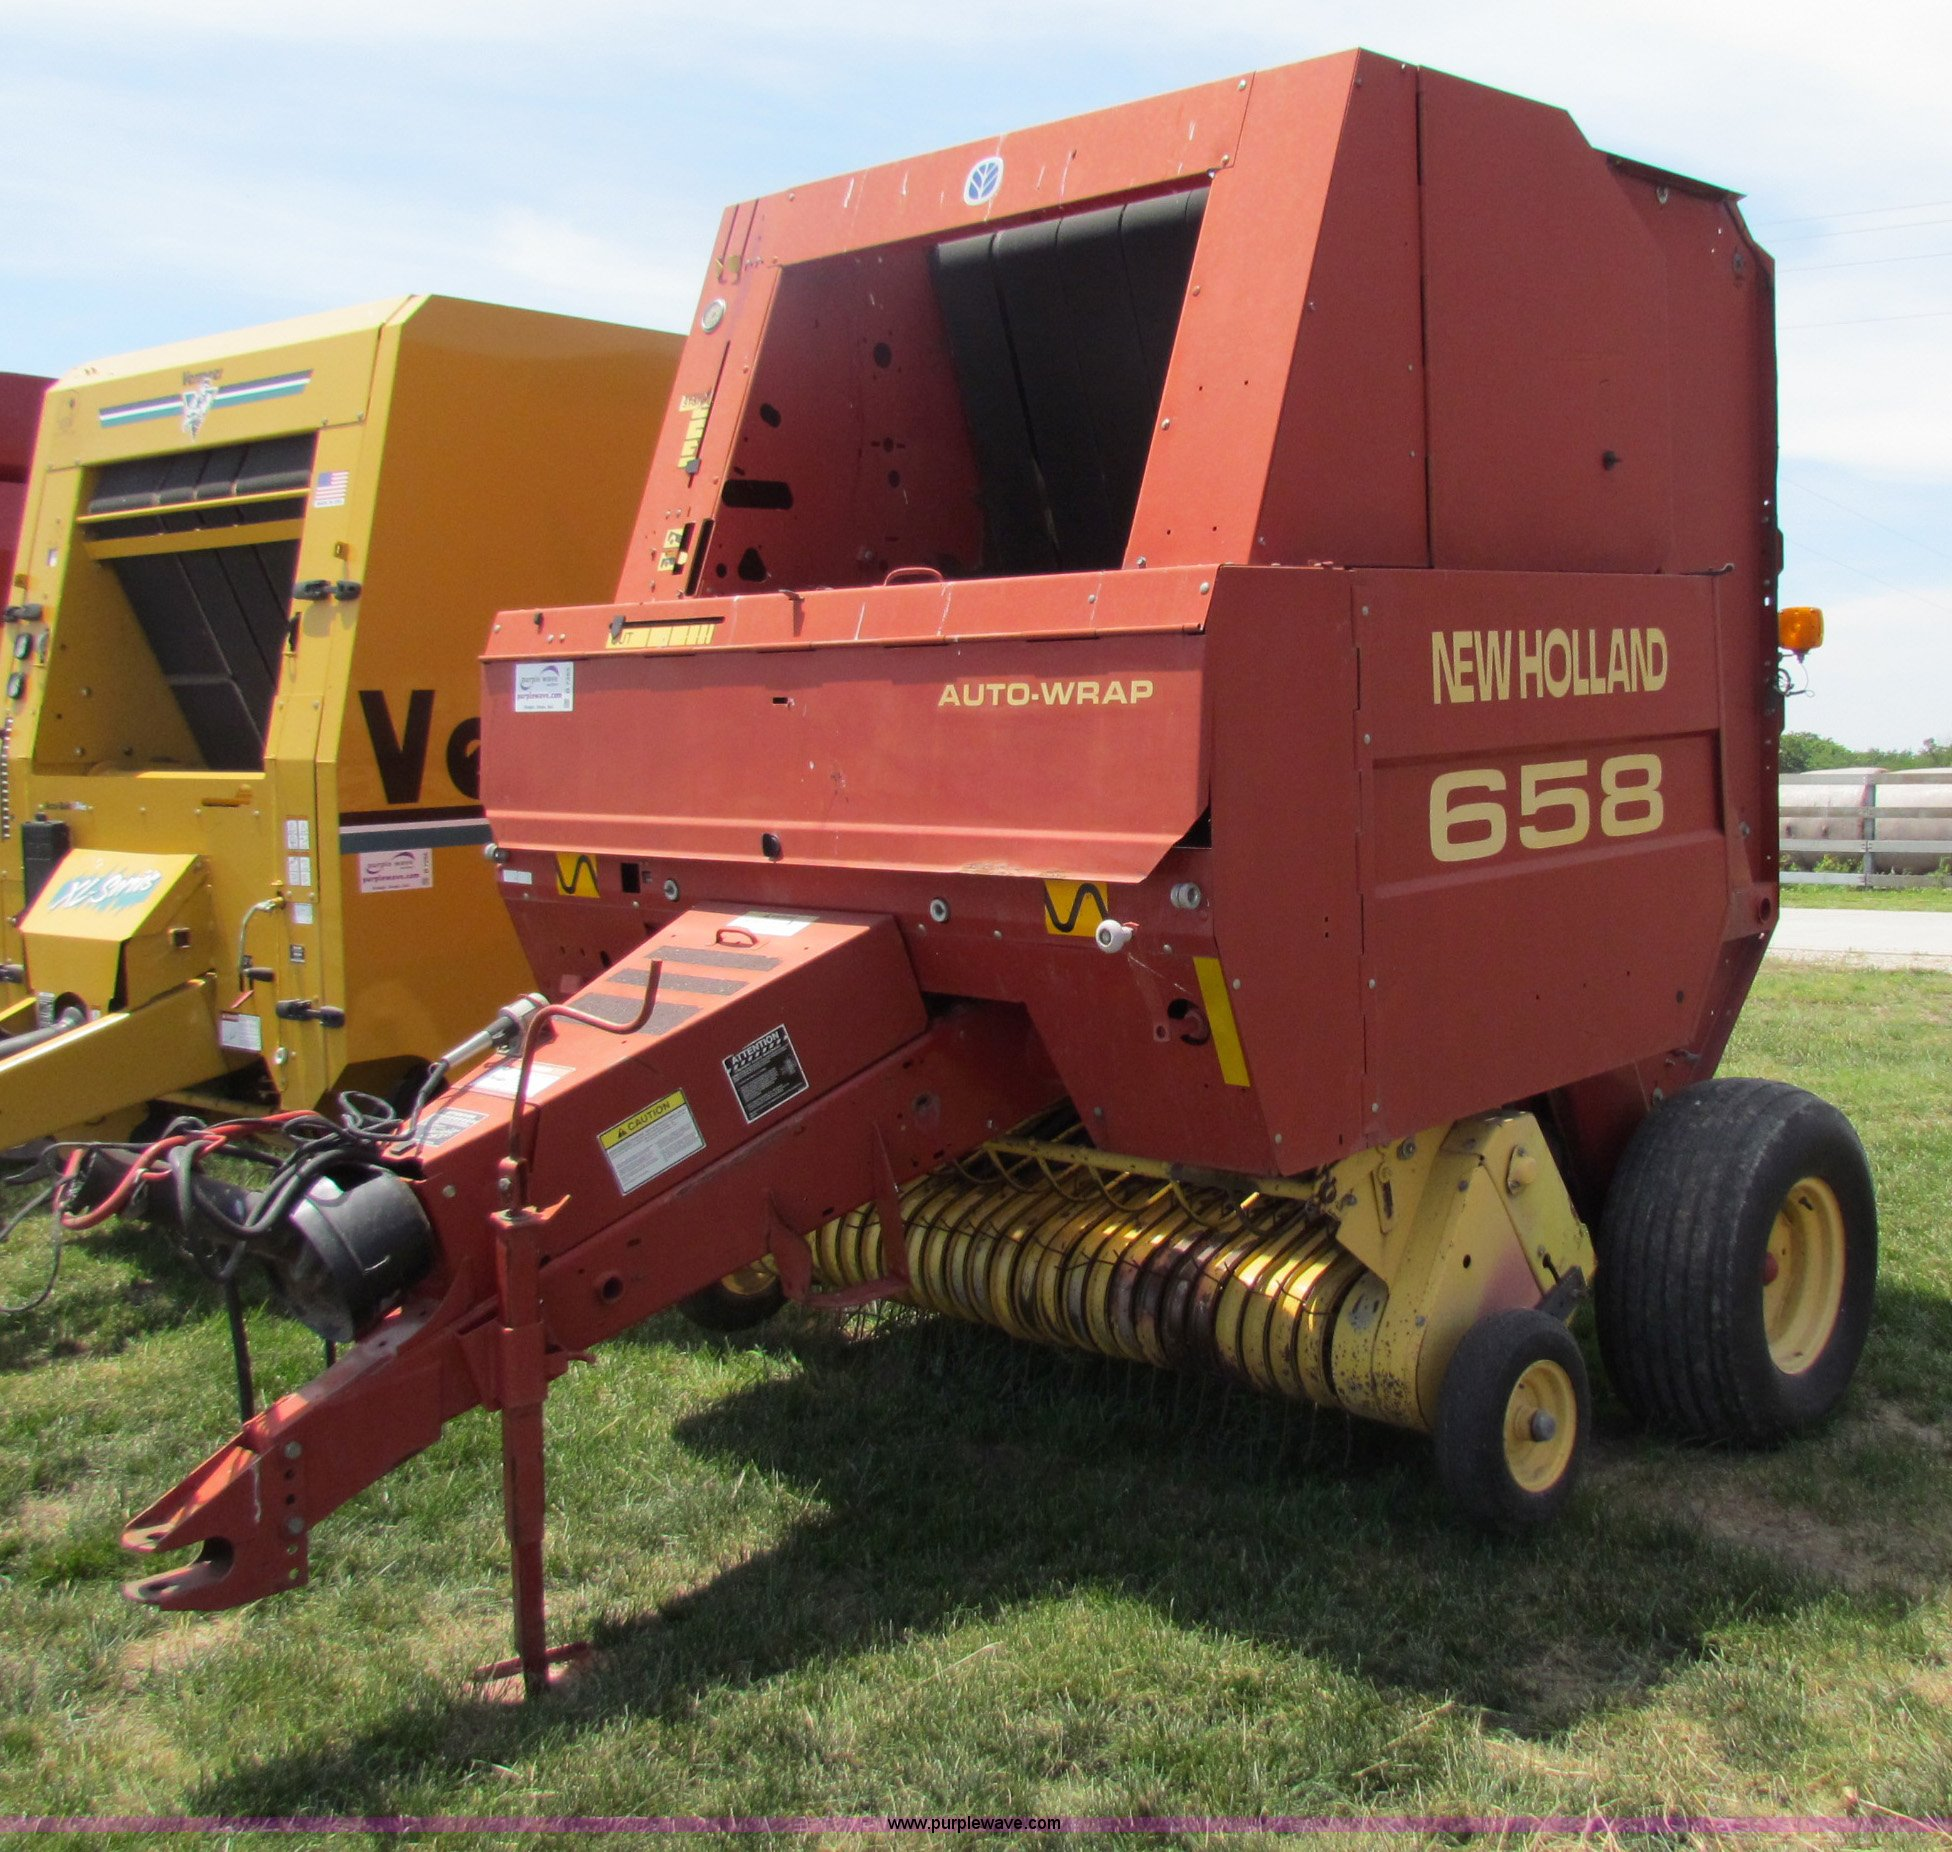 2000 New Holland 658 round baler for sale in Kansas